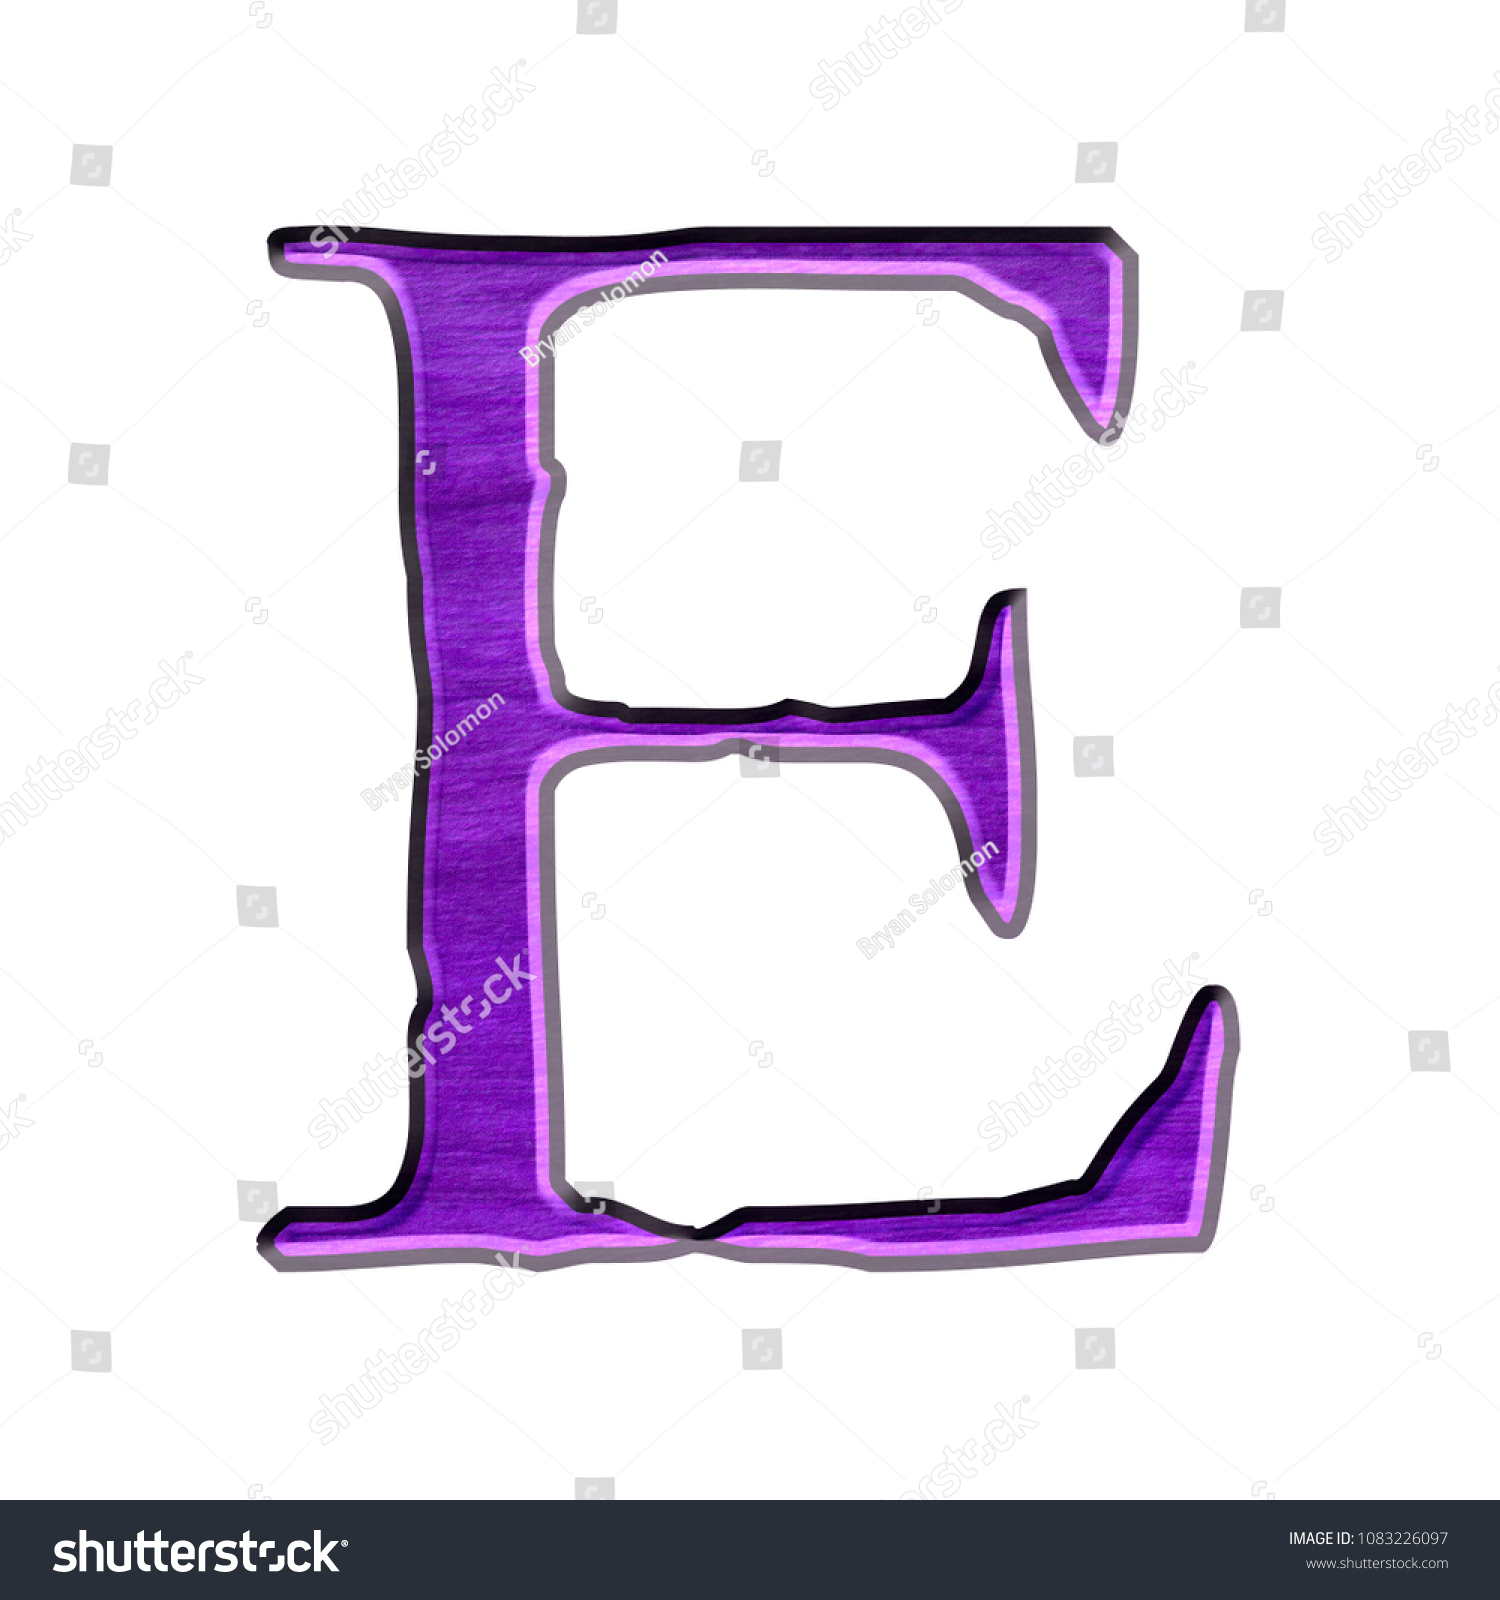 Royalty Free Stock Illustration Of Purple Color Wood Style Letter E